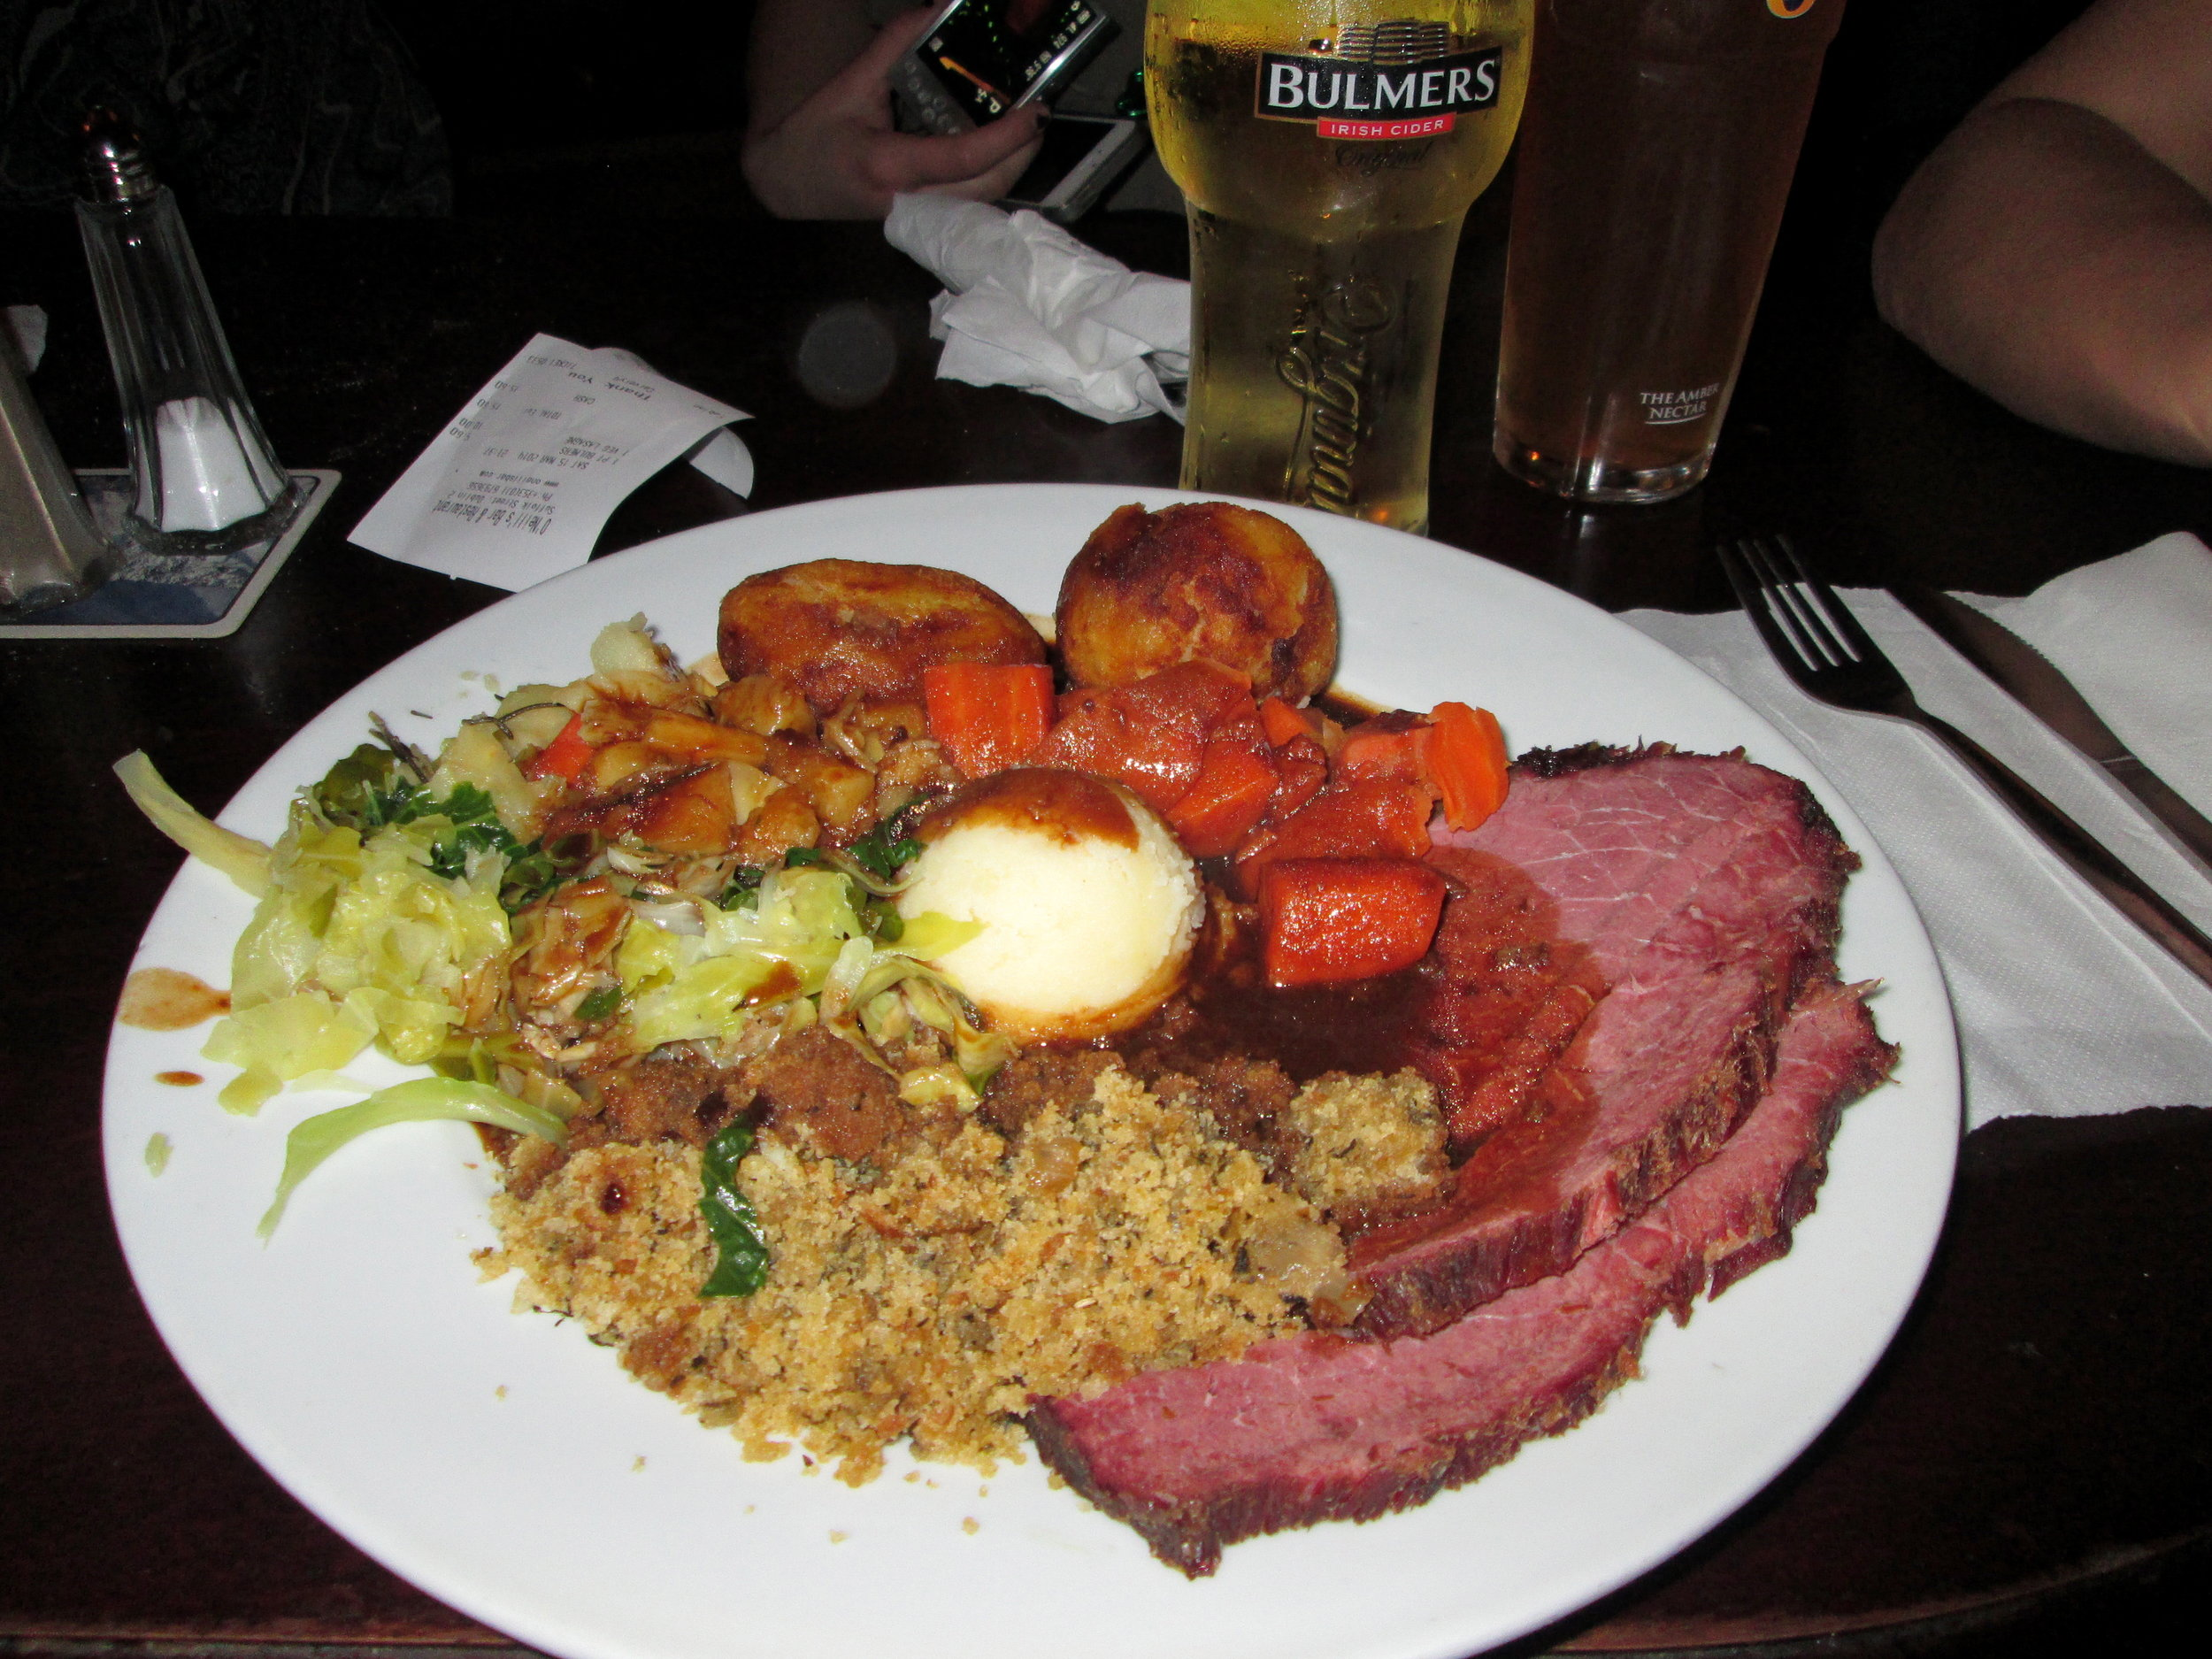 Traditional Corned Beef with stuffing, greens and mashed potatoes.